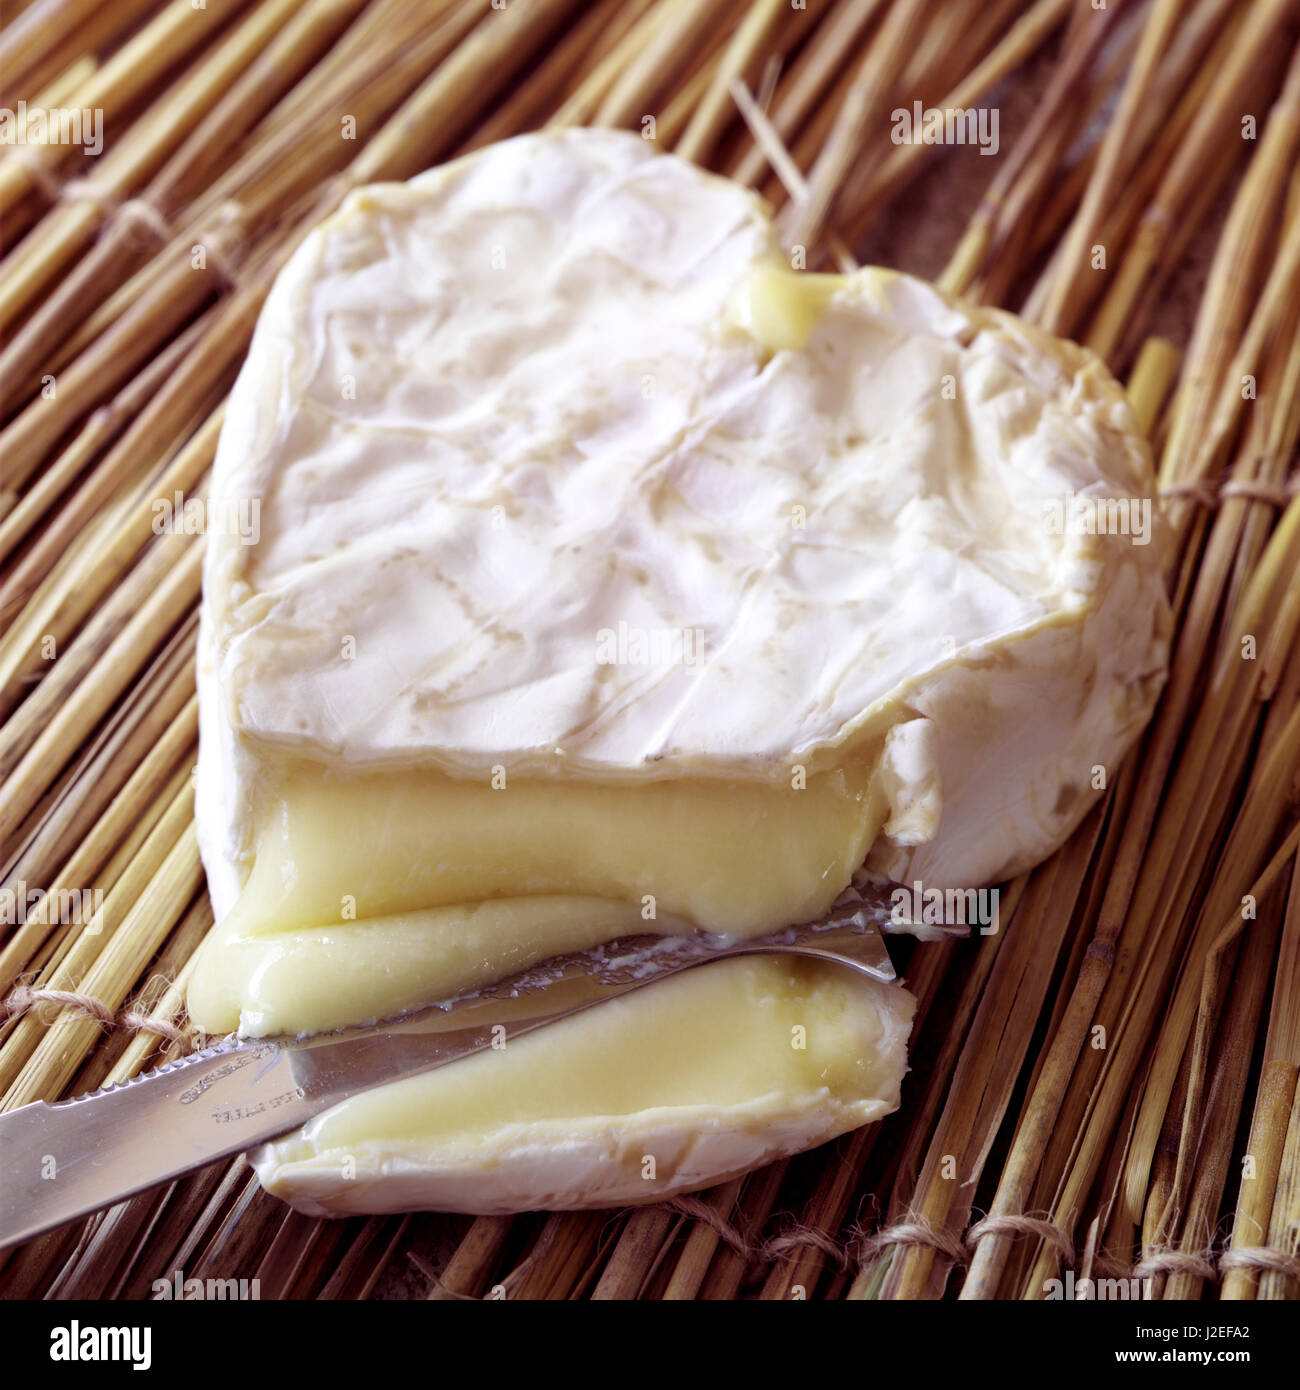 Neufchatel heart shaped cheese - Stock Image